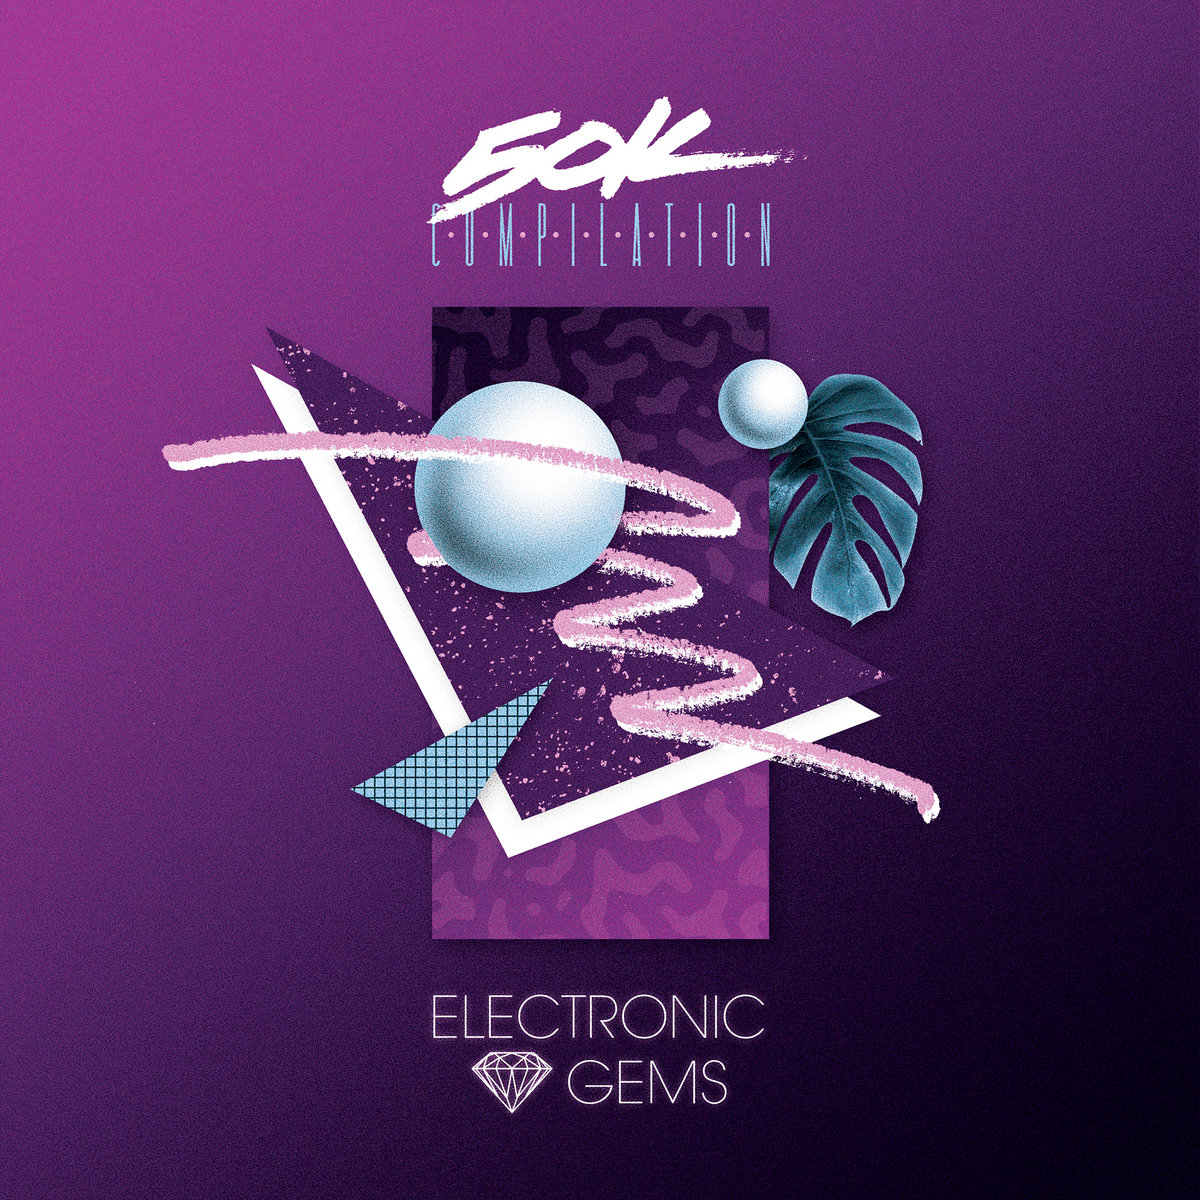 Electronic Gems Label [SynthWave, Electro Synth, ChillWave, DownTempo]